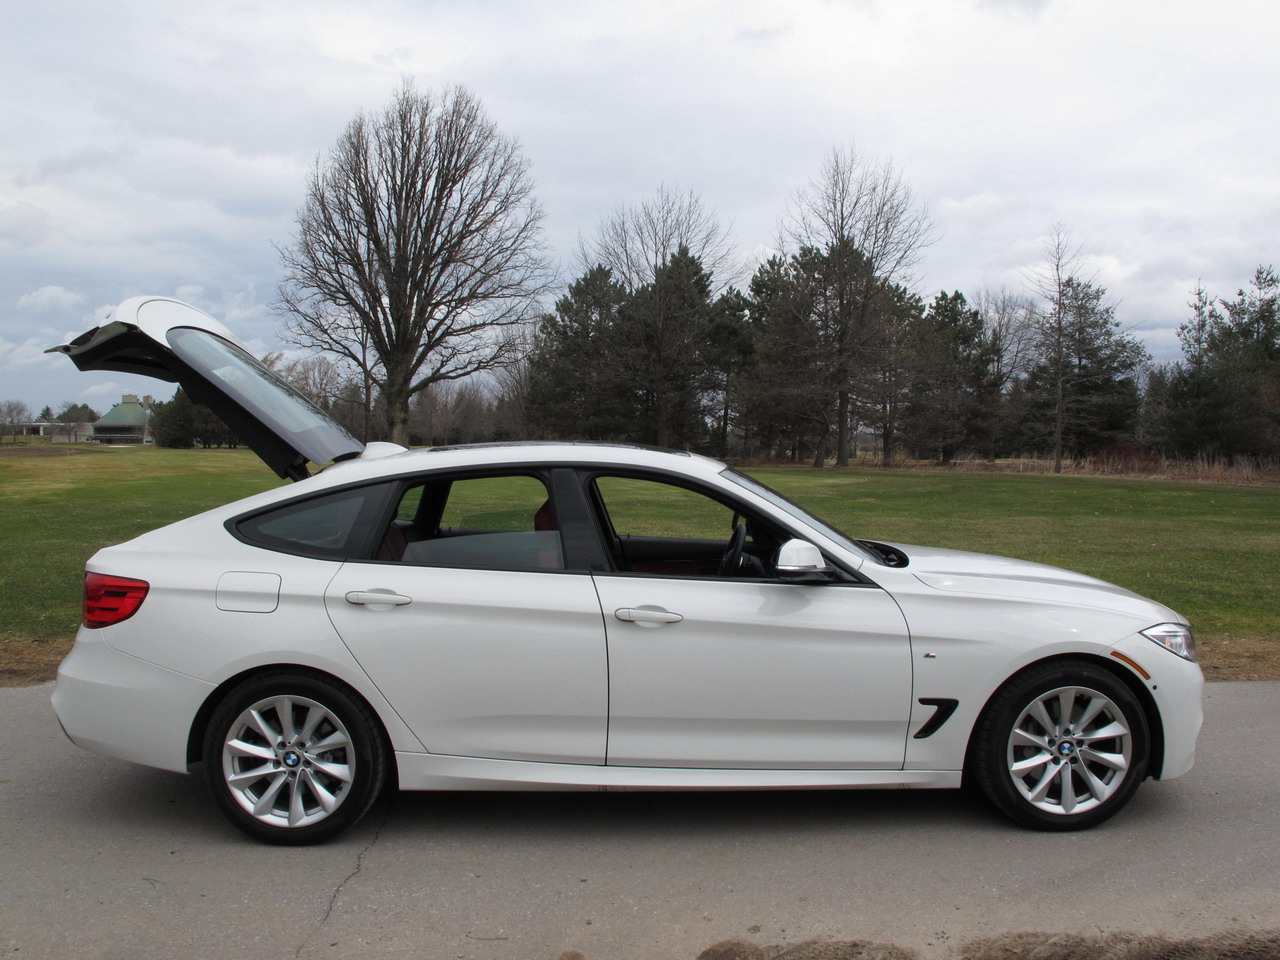 2014 bmw 335i gt white side view trunk open